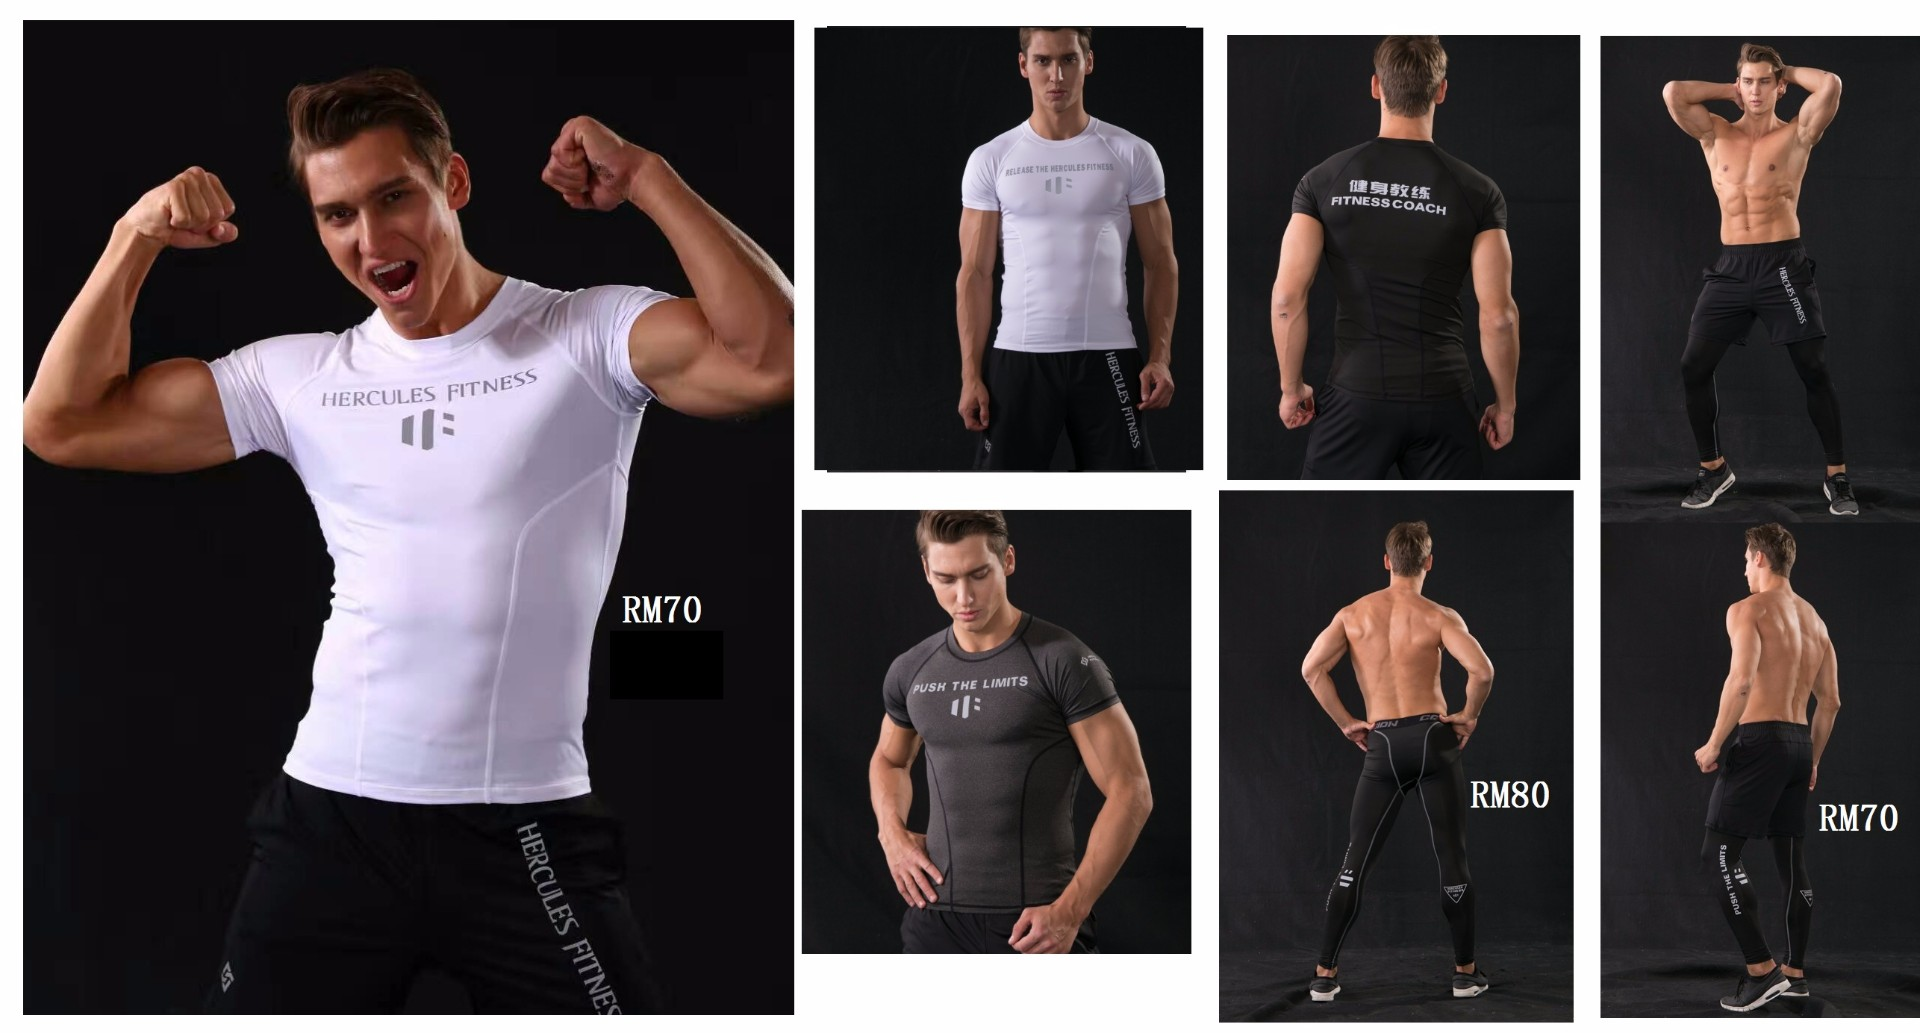 Hercules Fitness Collection